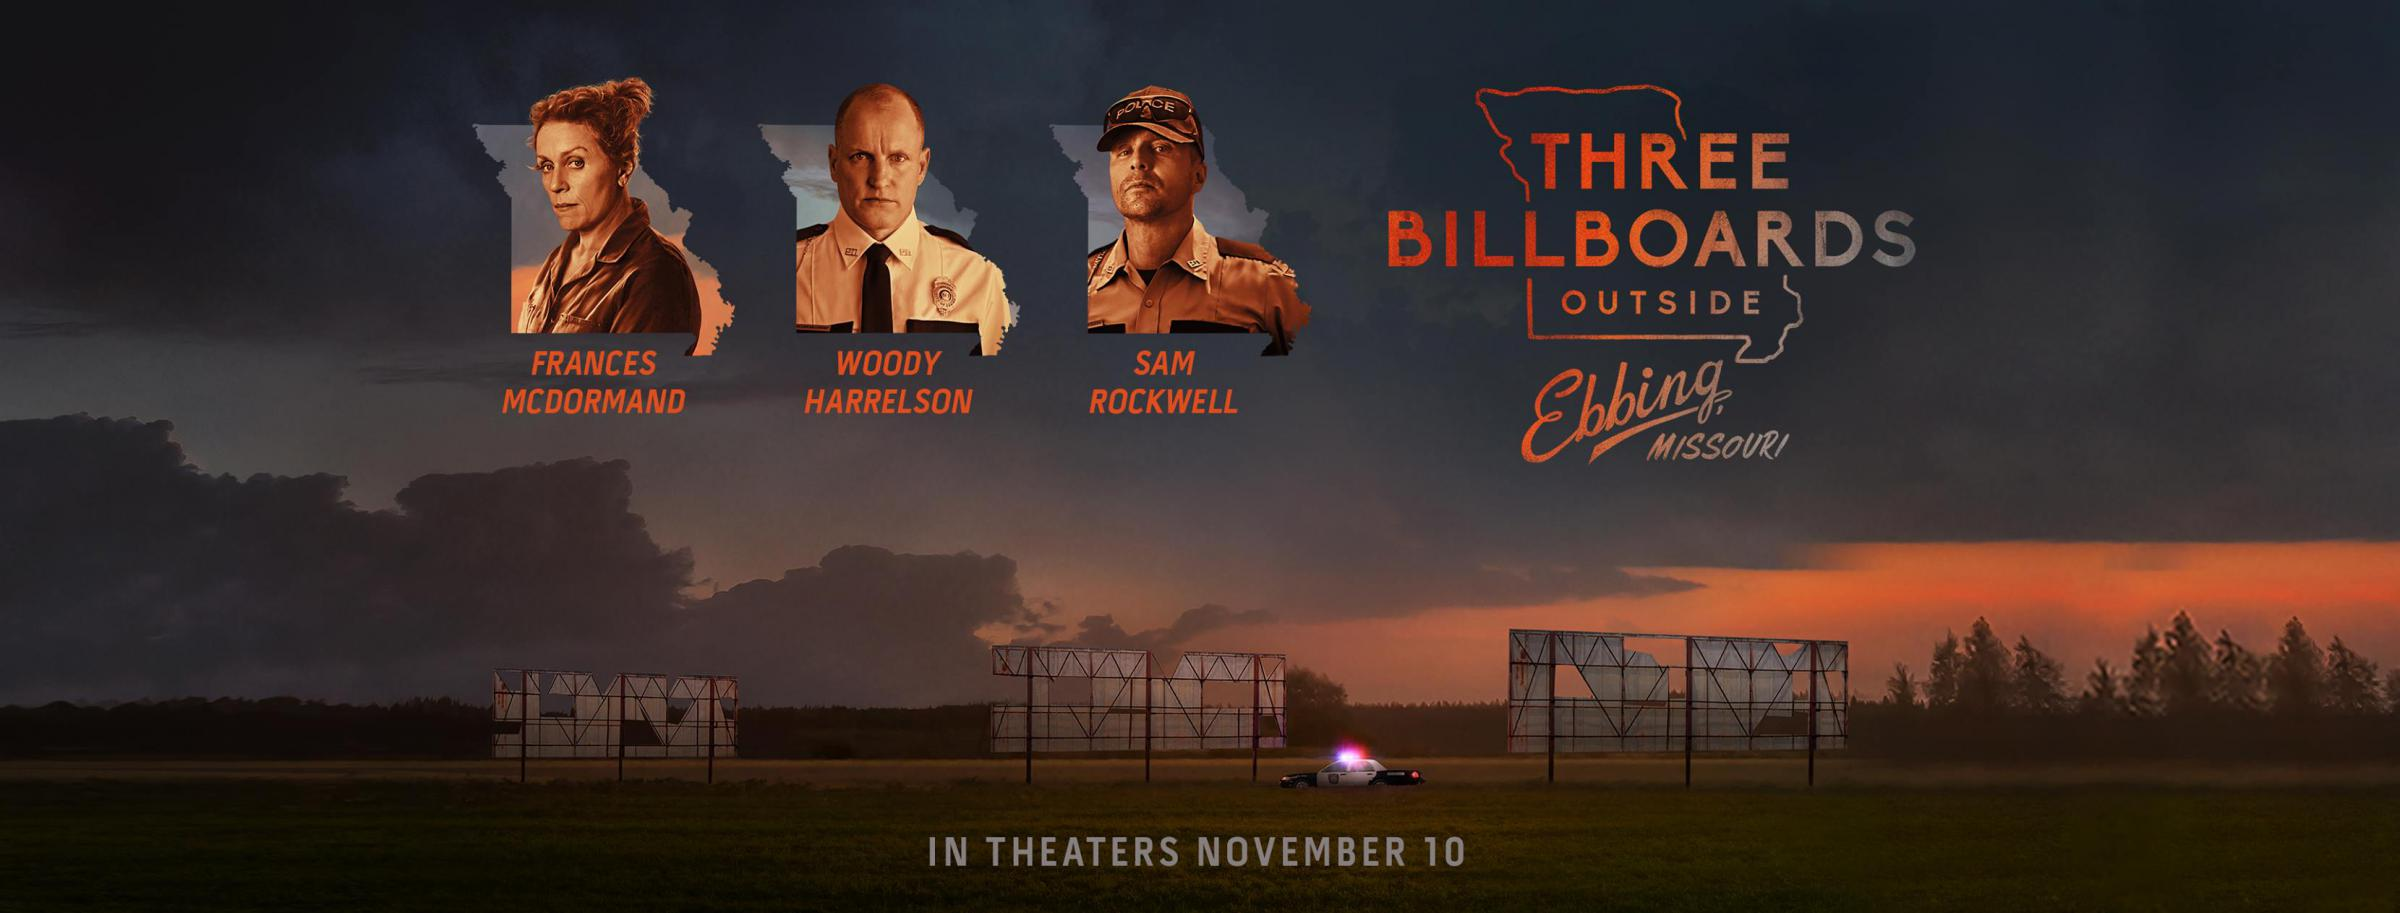 Oscar Buzz 2018: Three Billboards Outside Ebbing, Missouri